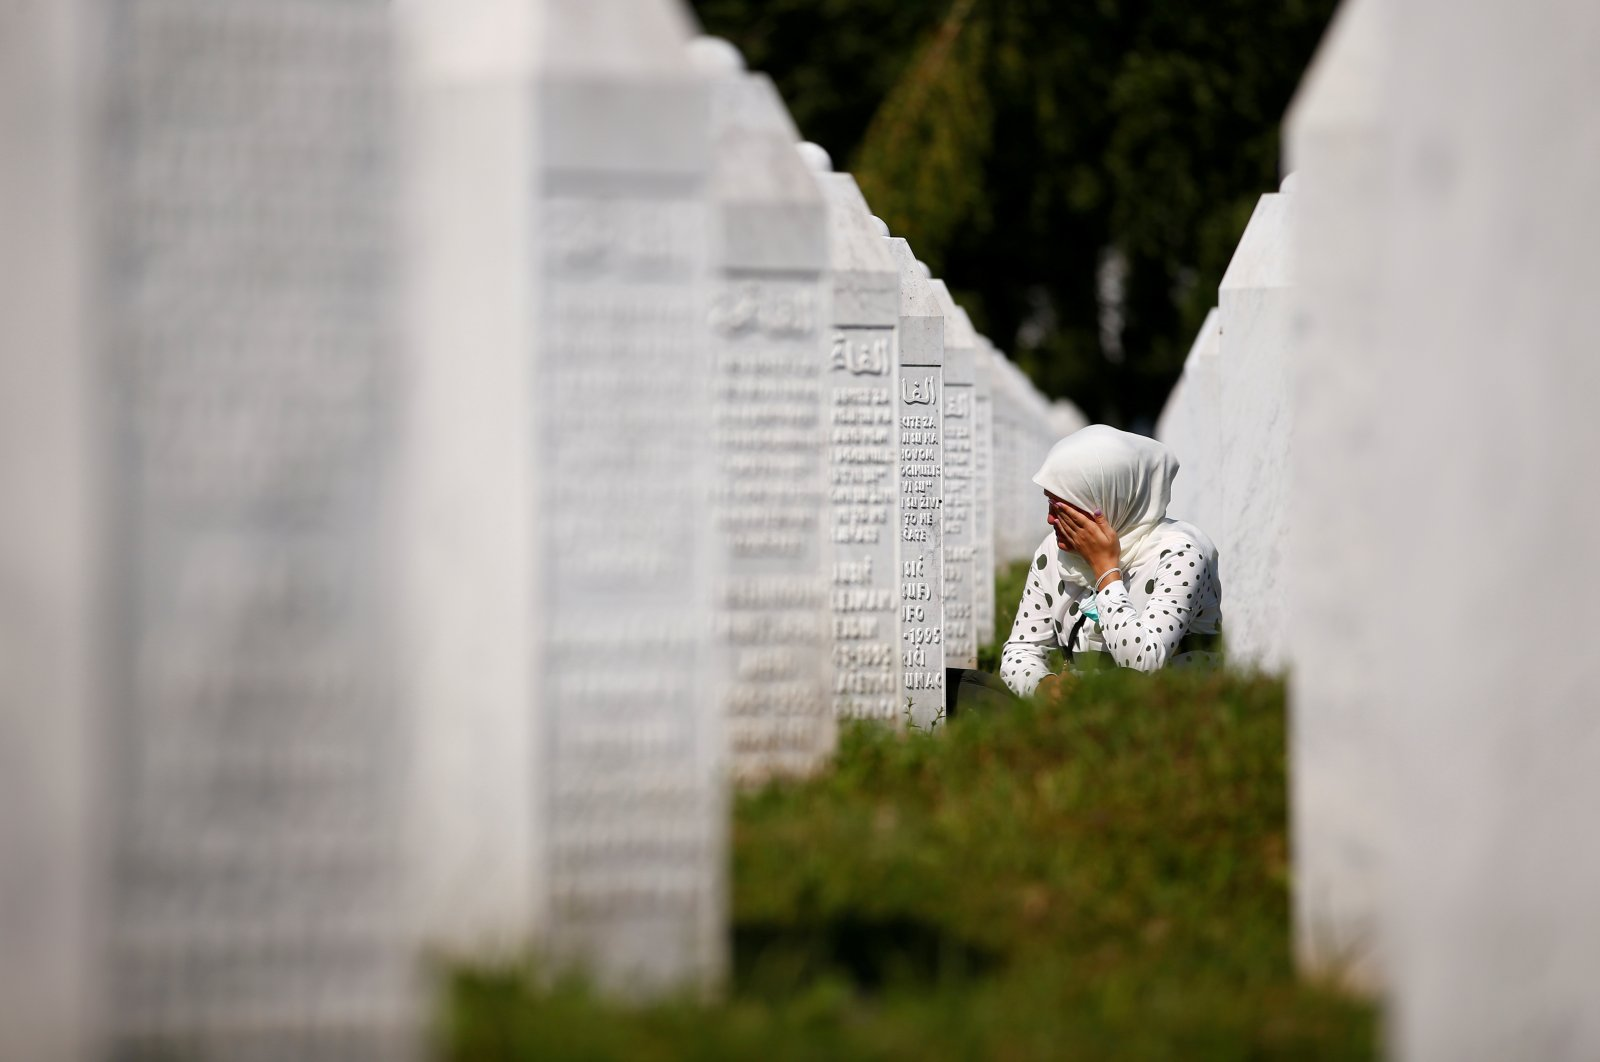 A woman cries at a graveyard ahead of a mass funeral in Potocari near Srebrenica, Bosnia and Herzegovina, July 11, 2020. (Reuters Photo)